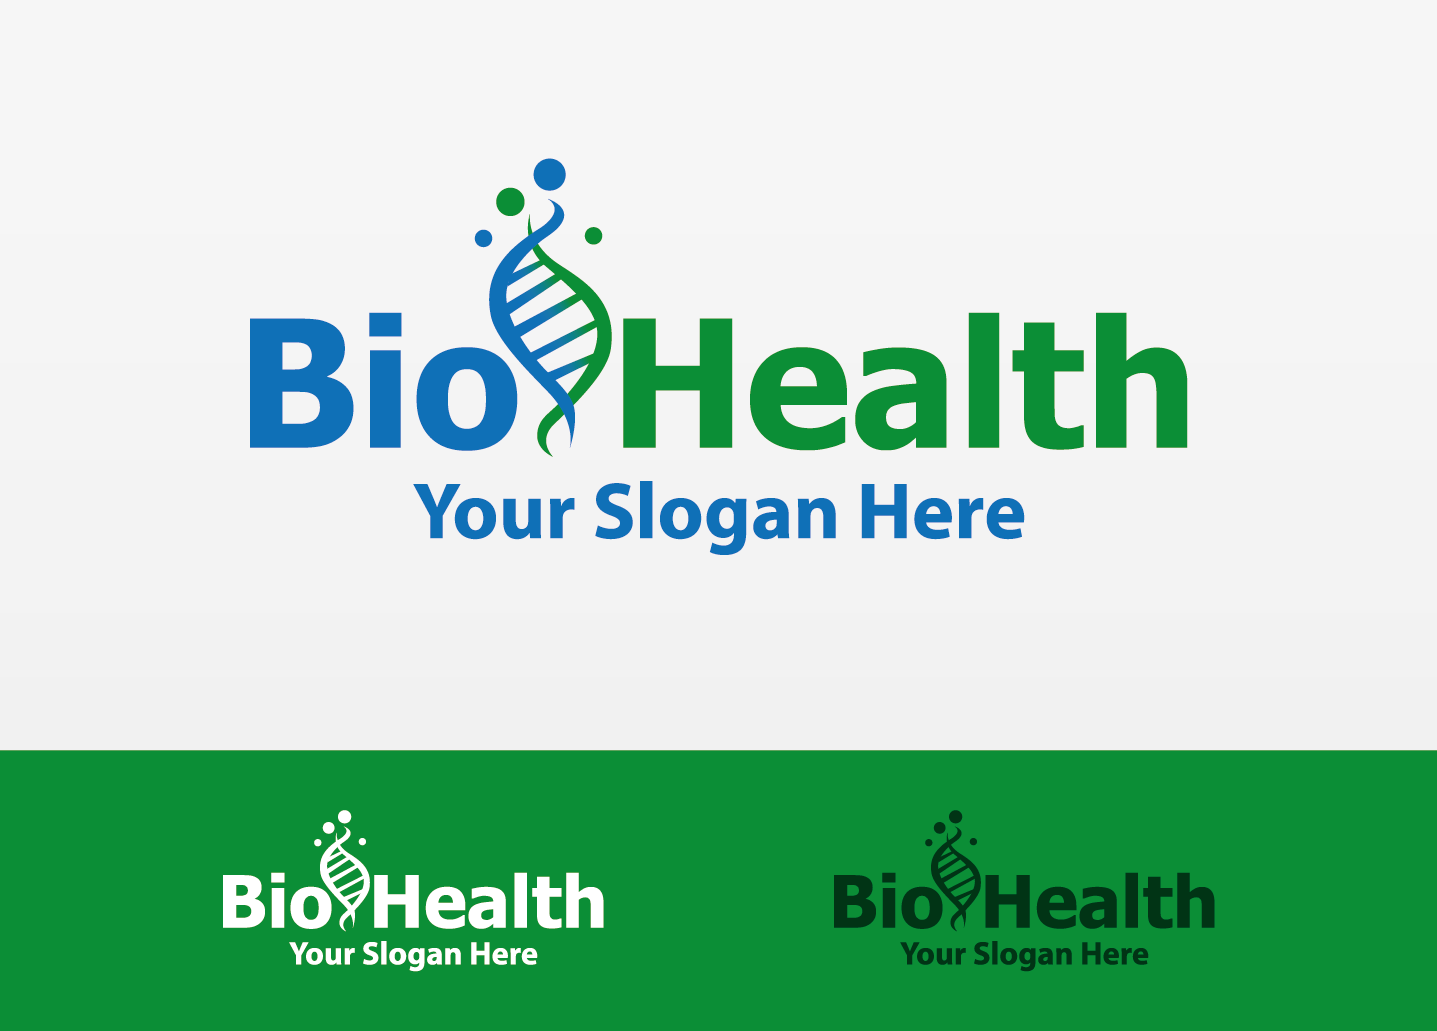 Bio Health by Himawanrushx  a perfect logo for Medical & Pharmaceutical